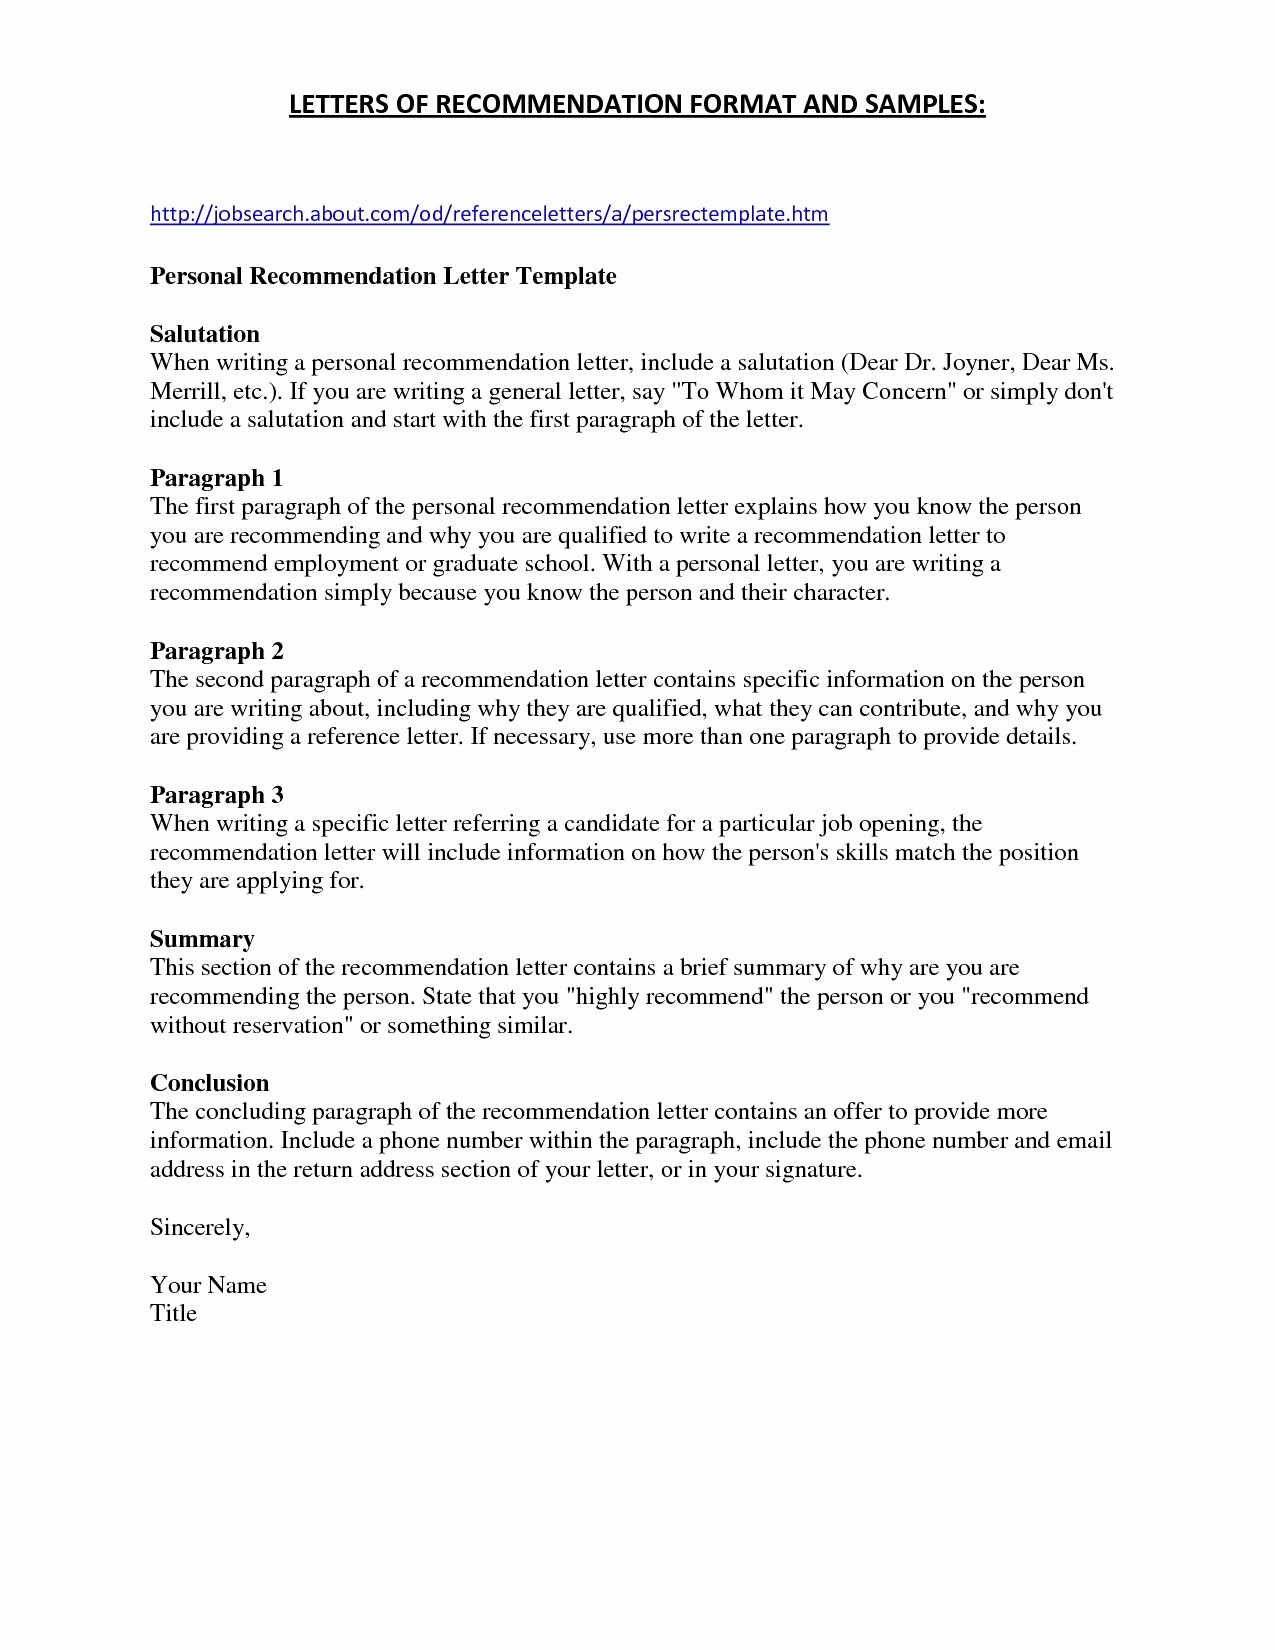 Textedit Resume Template - Resume Resume Tex Template Templates Latex Aurelianmg Lovely